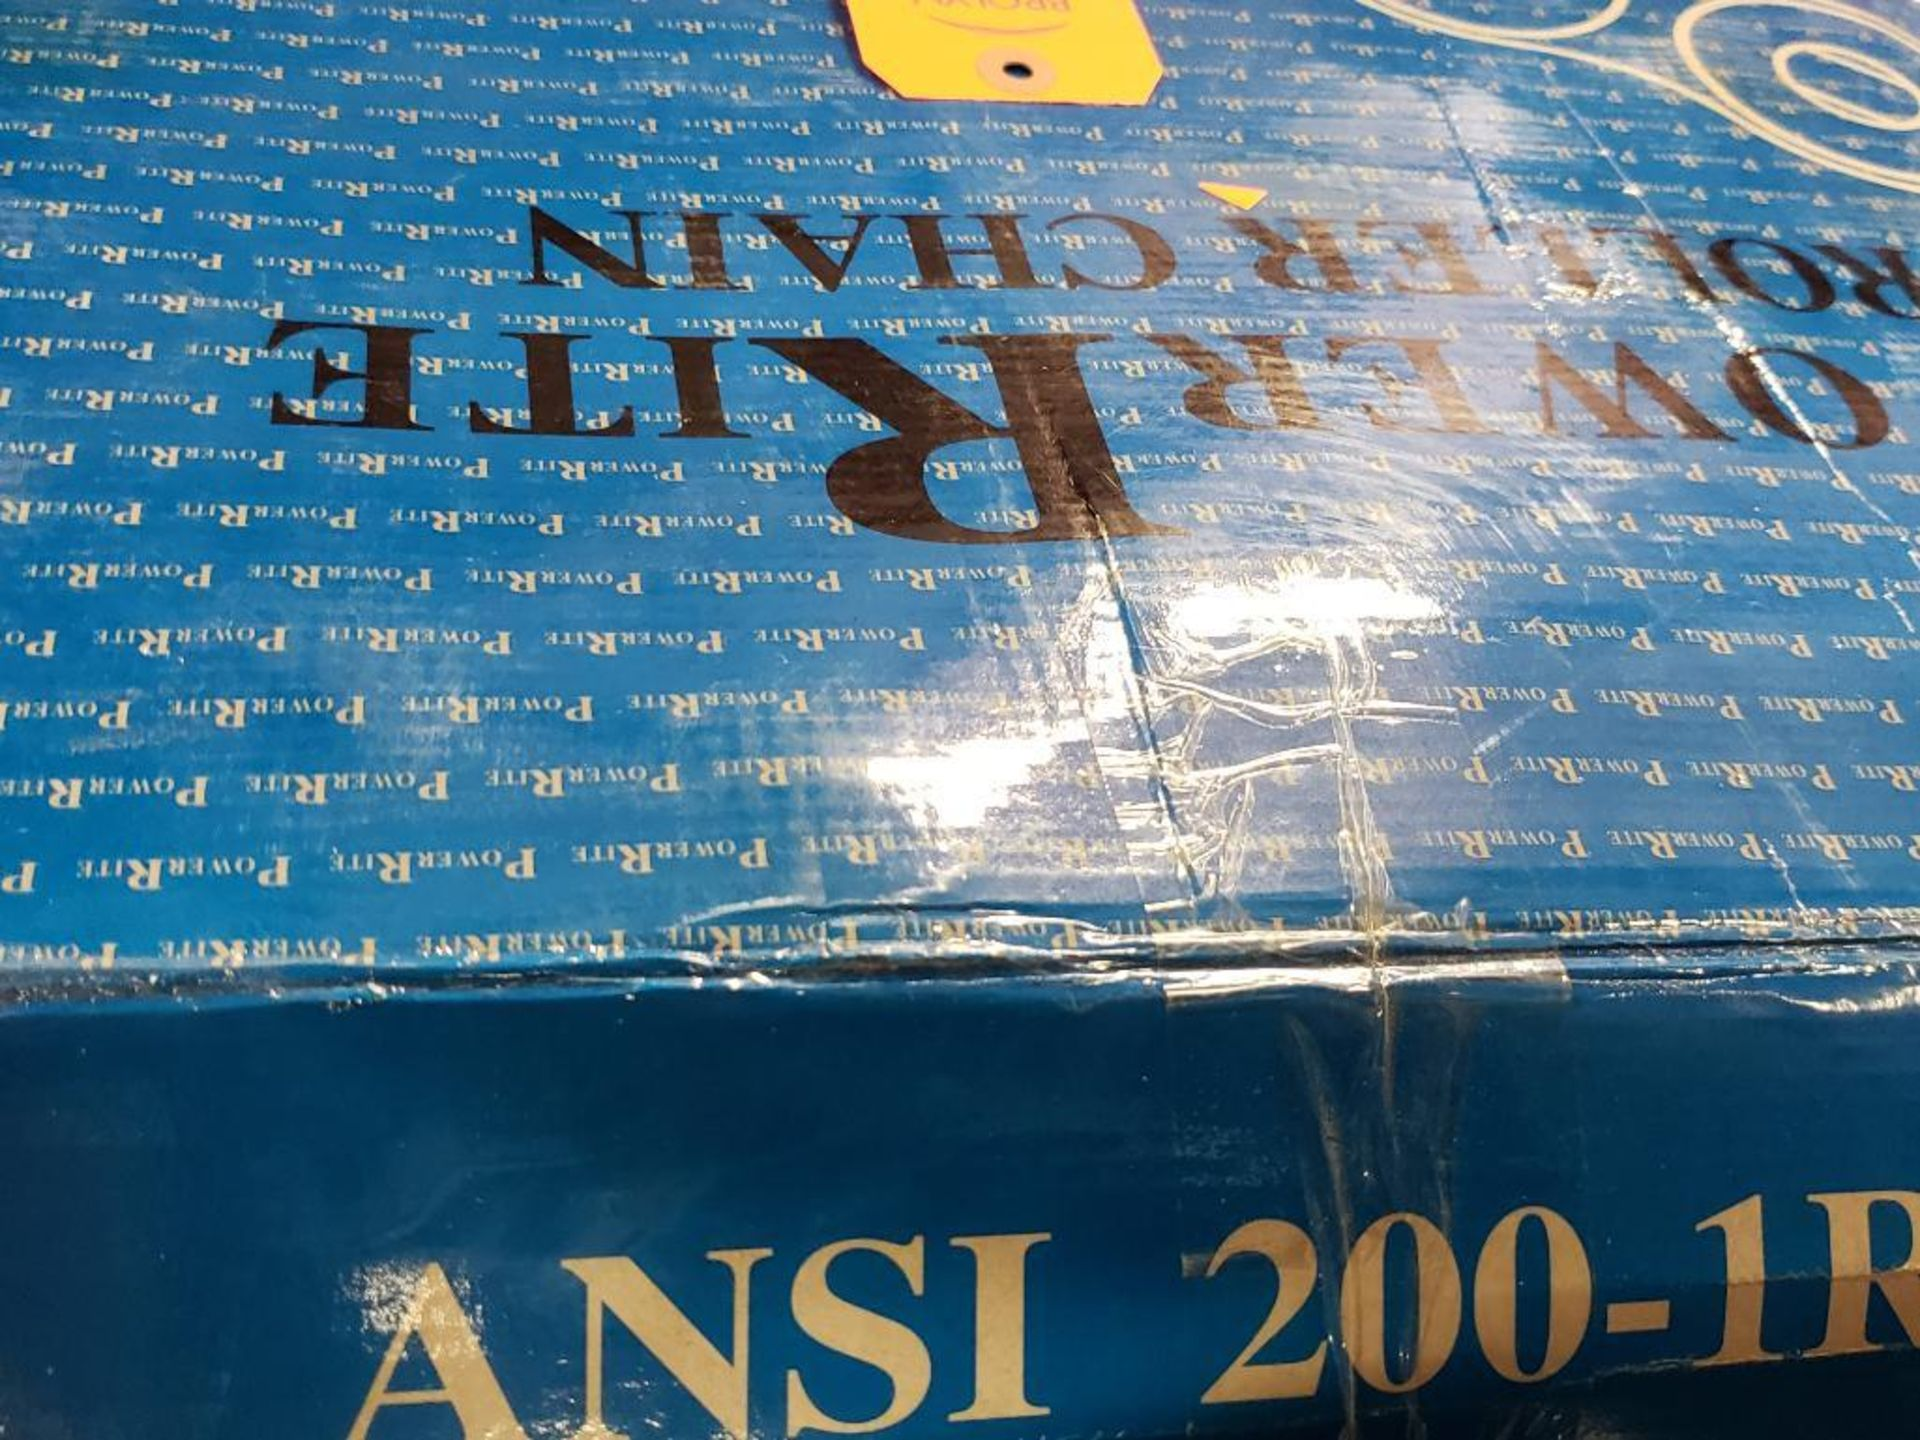 Power Rite ANSI 200-1R-10FT Roller Chain. New in Box. - Image 2 of 4